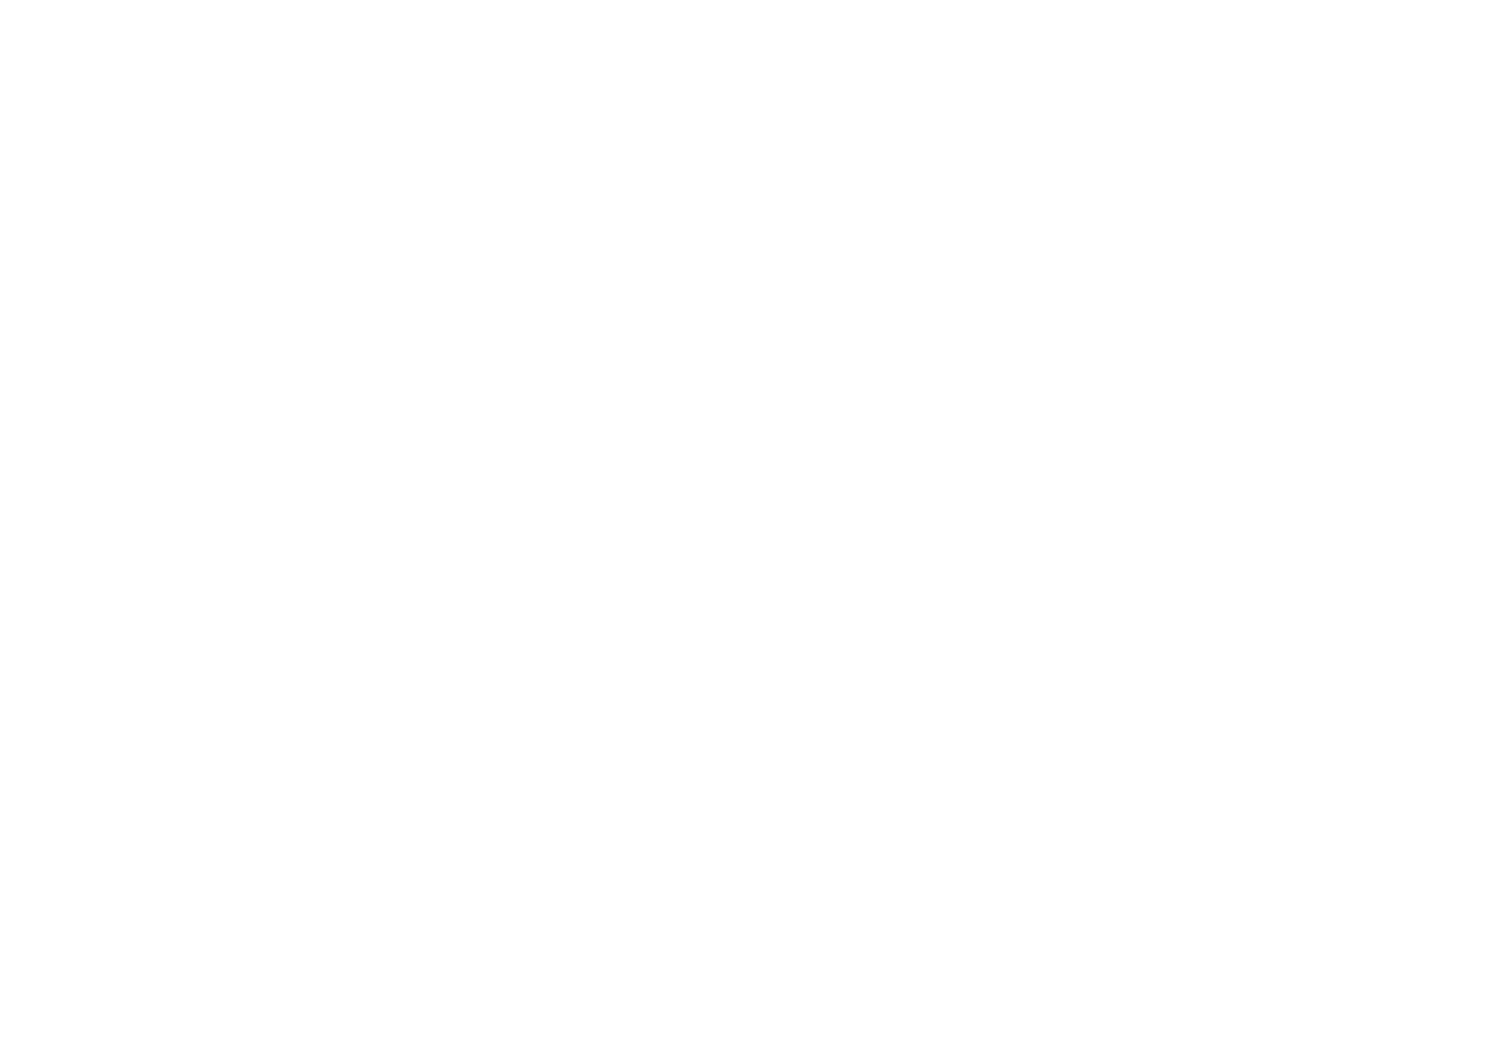 Williamsburg Salsa Orchestra